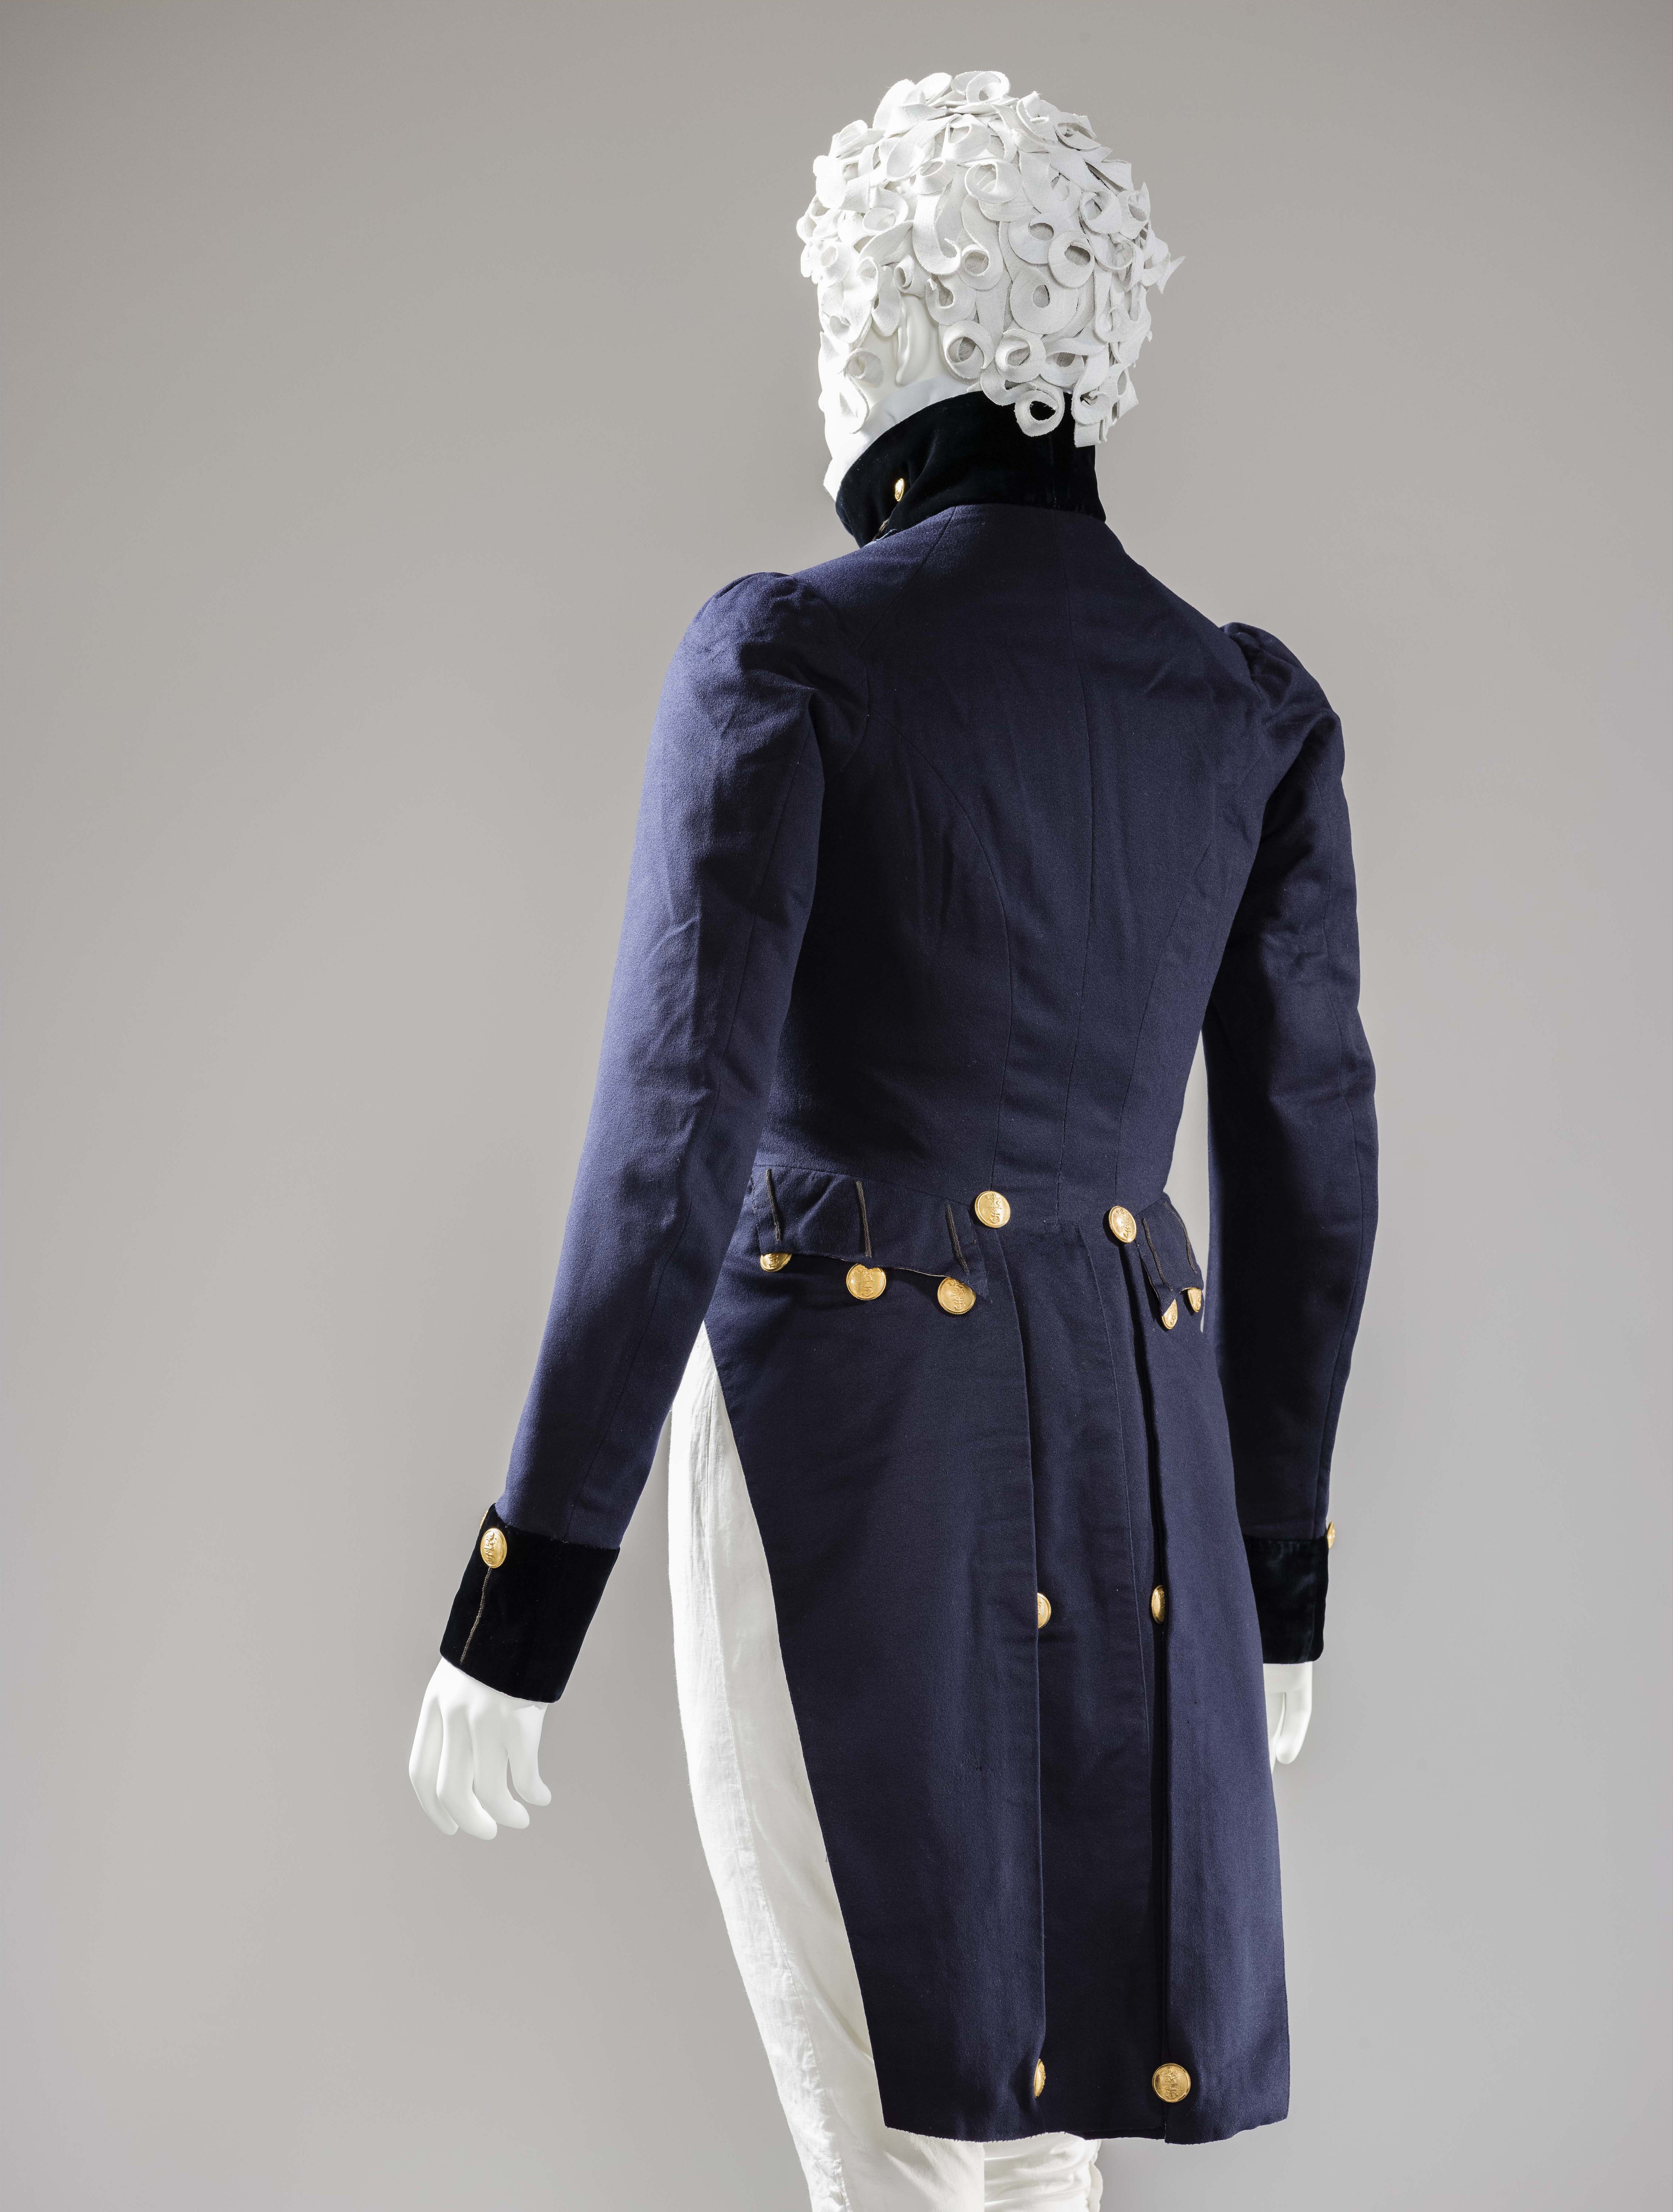 Naval uniform (England, circa 1820). Photo credit: © Museum associates/LACMA